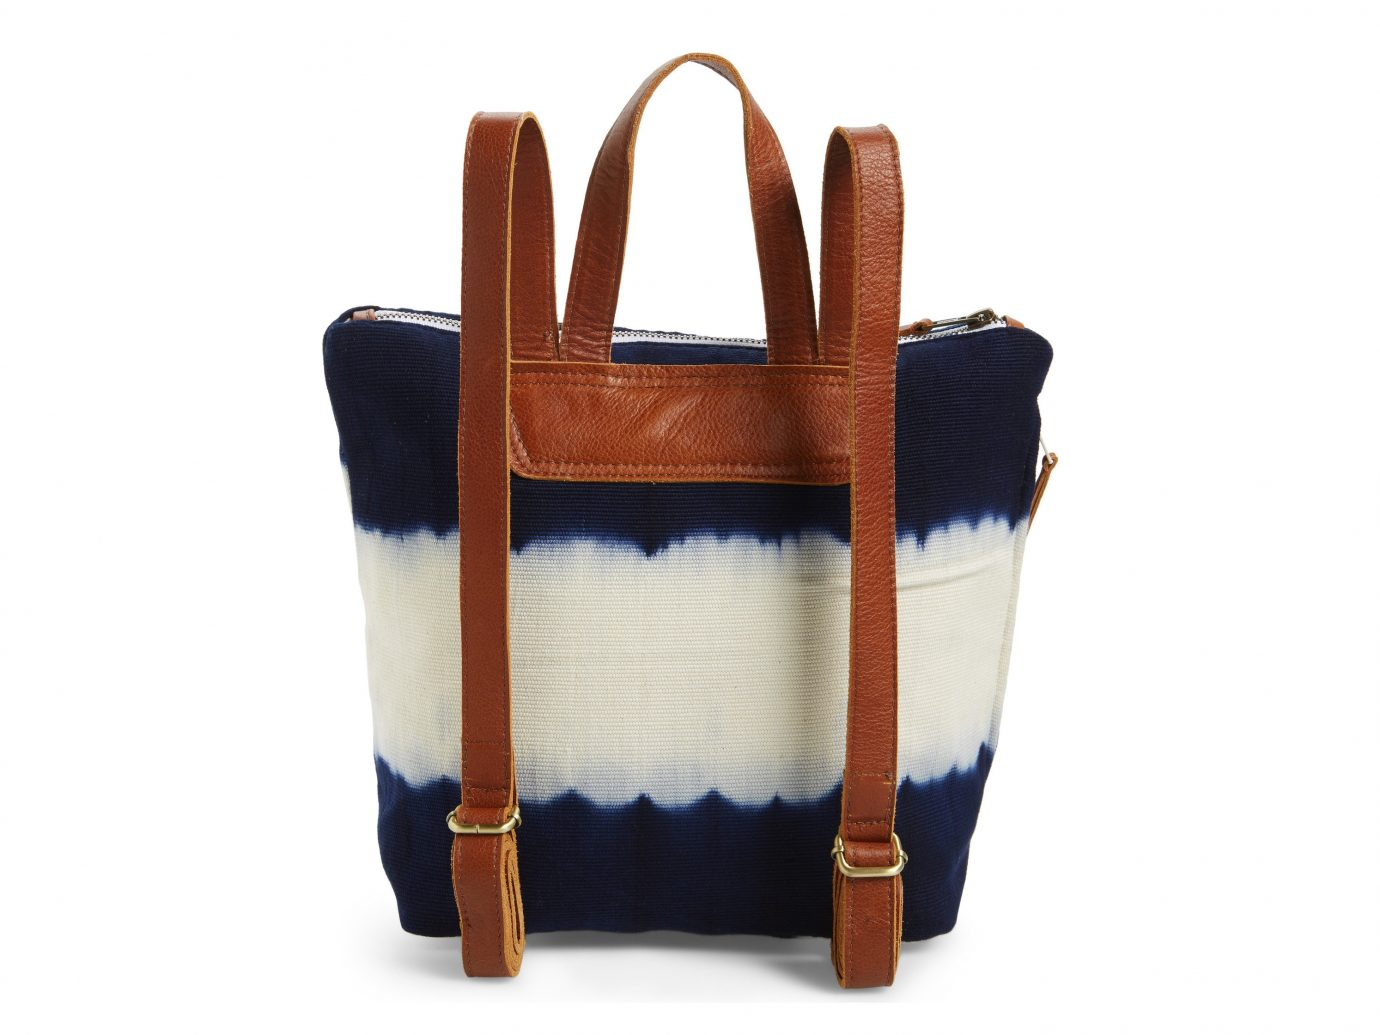 Style + Design bag handbag shoulder bag product leather electric blue tote bag product design animal product accessory colored